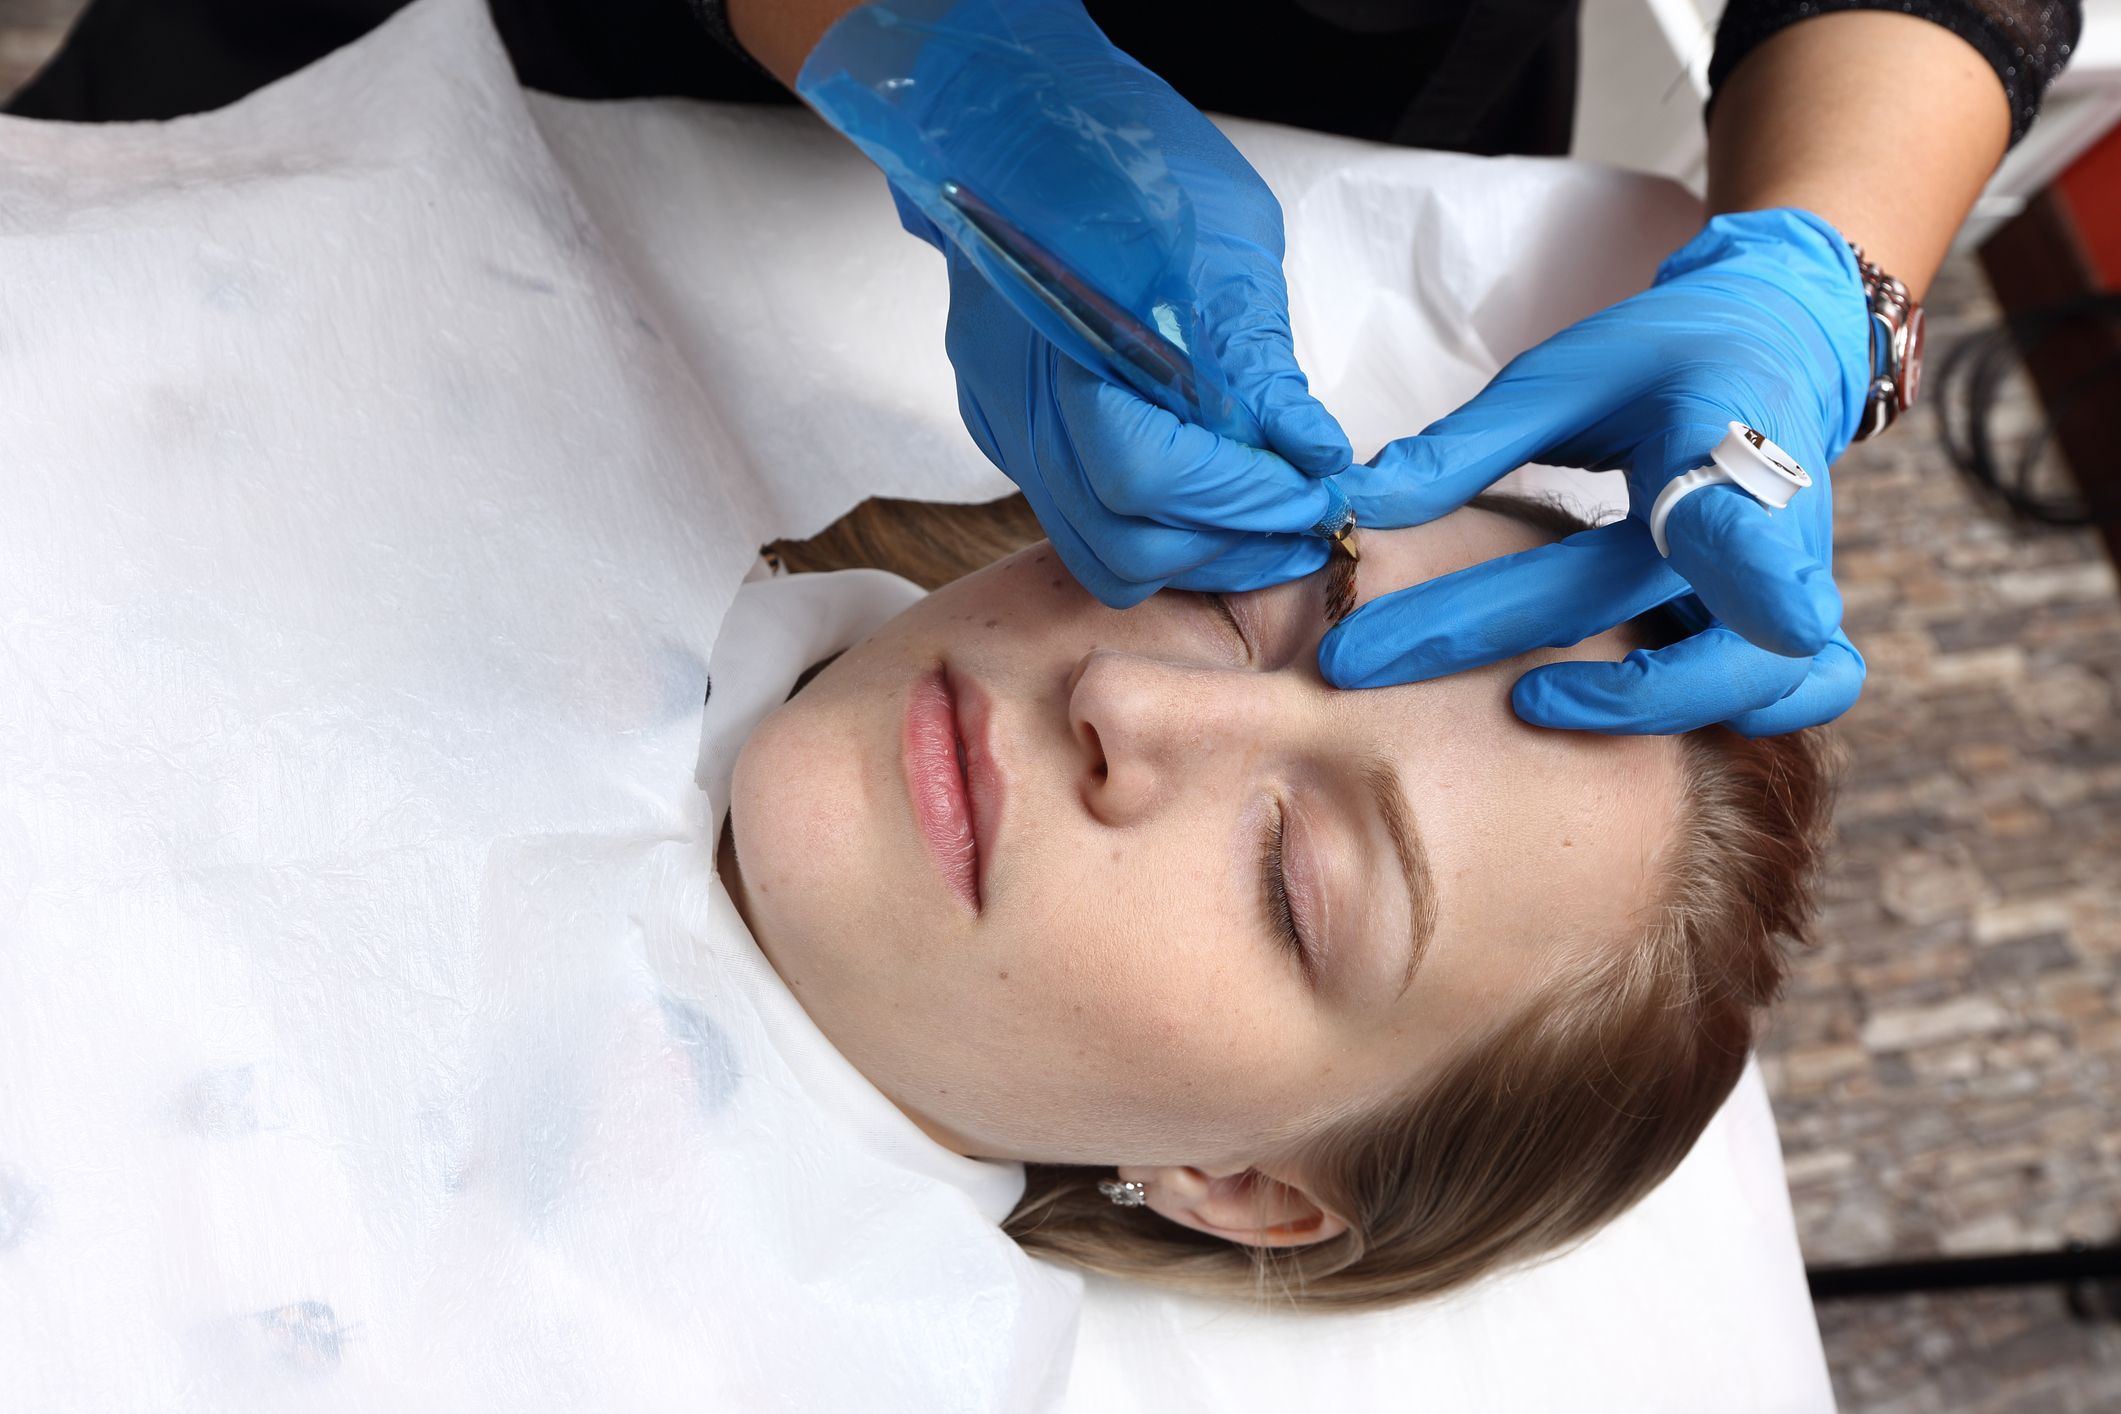 Woman Hospitalized With Eyebrow Infection From Microblading